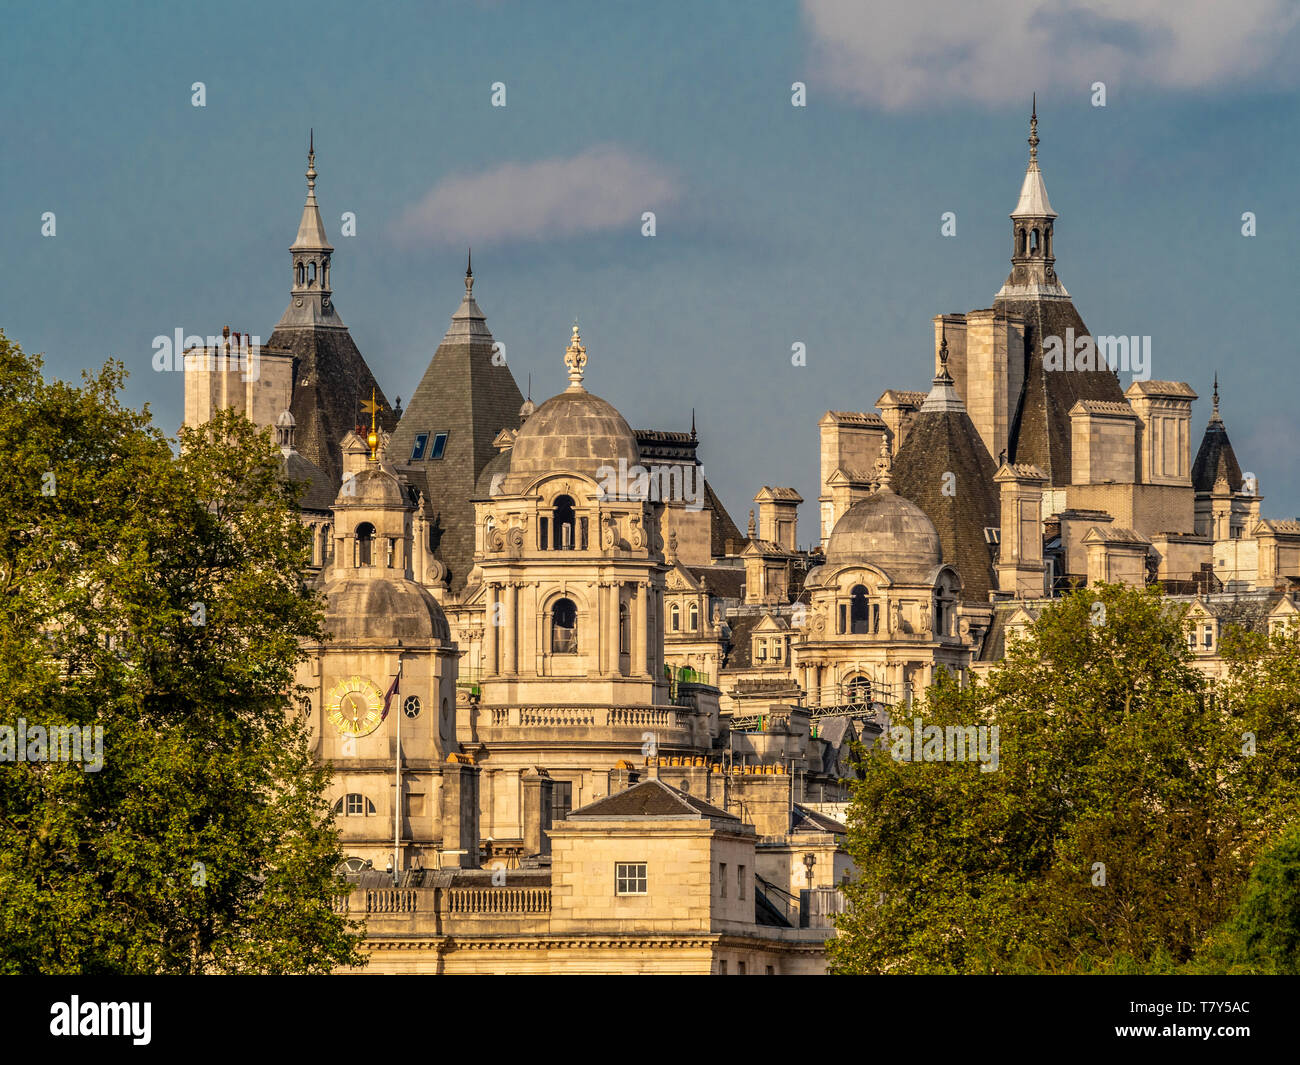 View from St James Park towards Horse Guard and Whitehall, London, UK - Stock Image